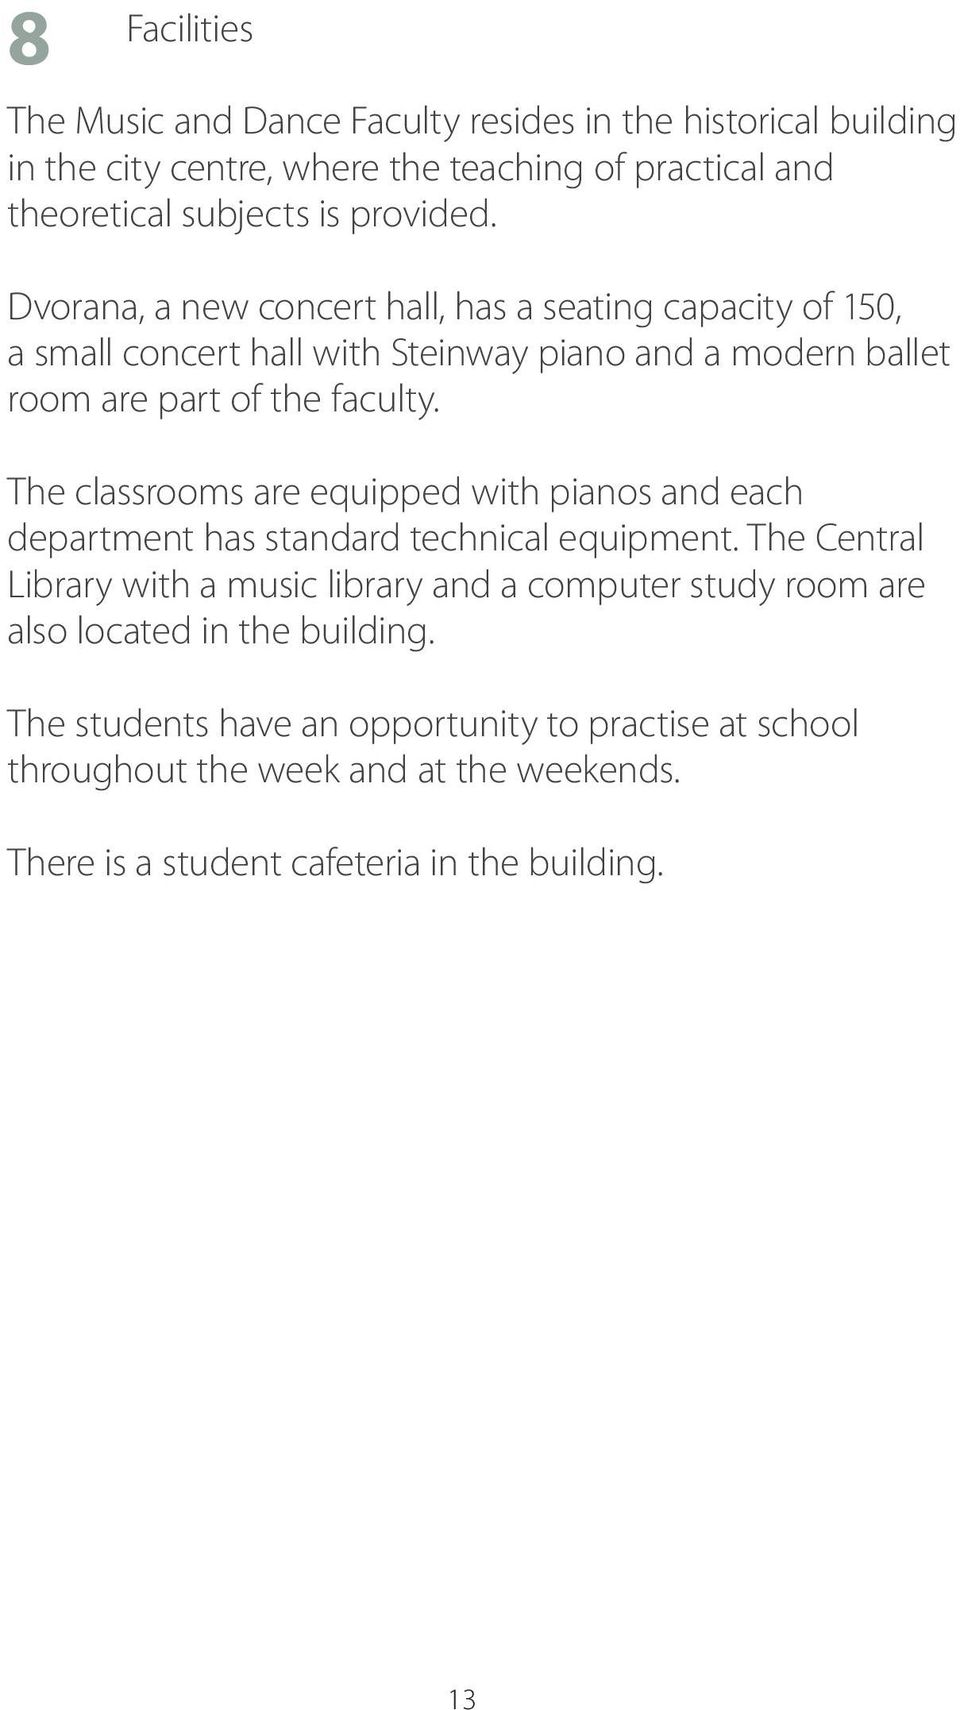 The classrooms are equipped with pianos and each department has standard technical equipment.